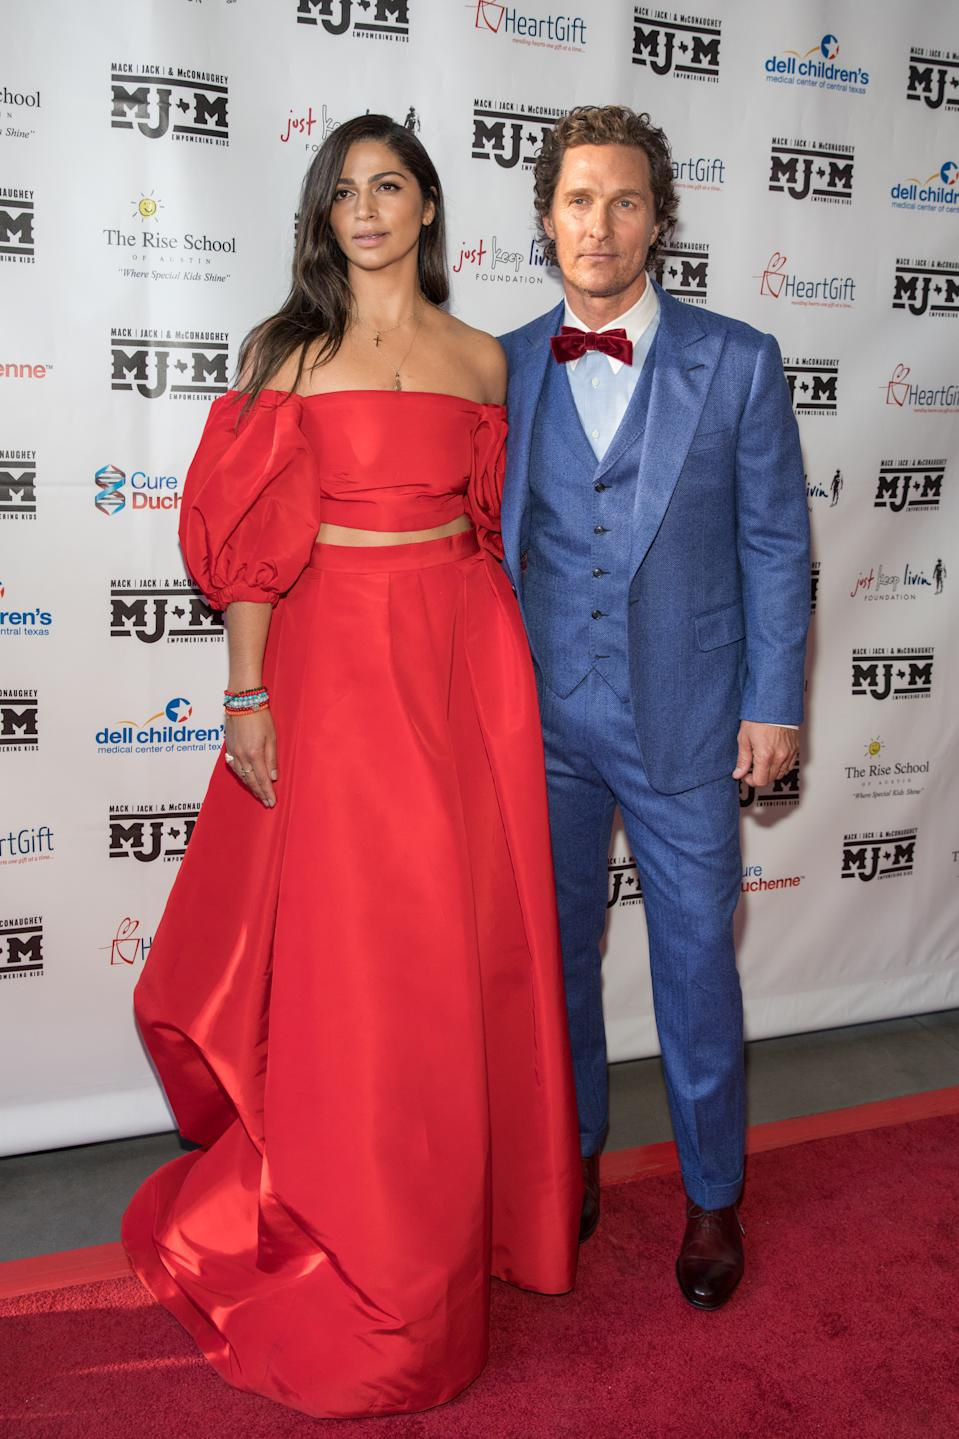 Camila Alves and Matthew McConaughey arrive at the Mack, Jack & McConaughey charity gala at ACL Live on April 25, 2019 in Austin, Texas.